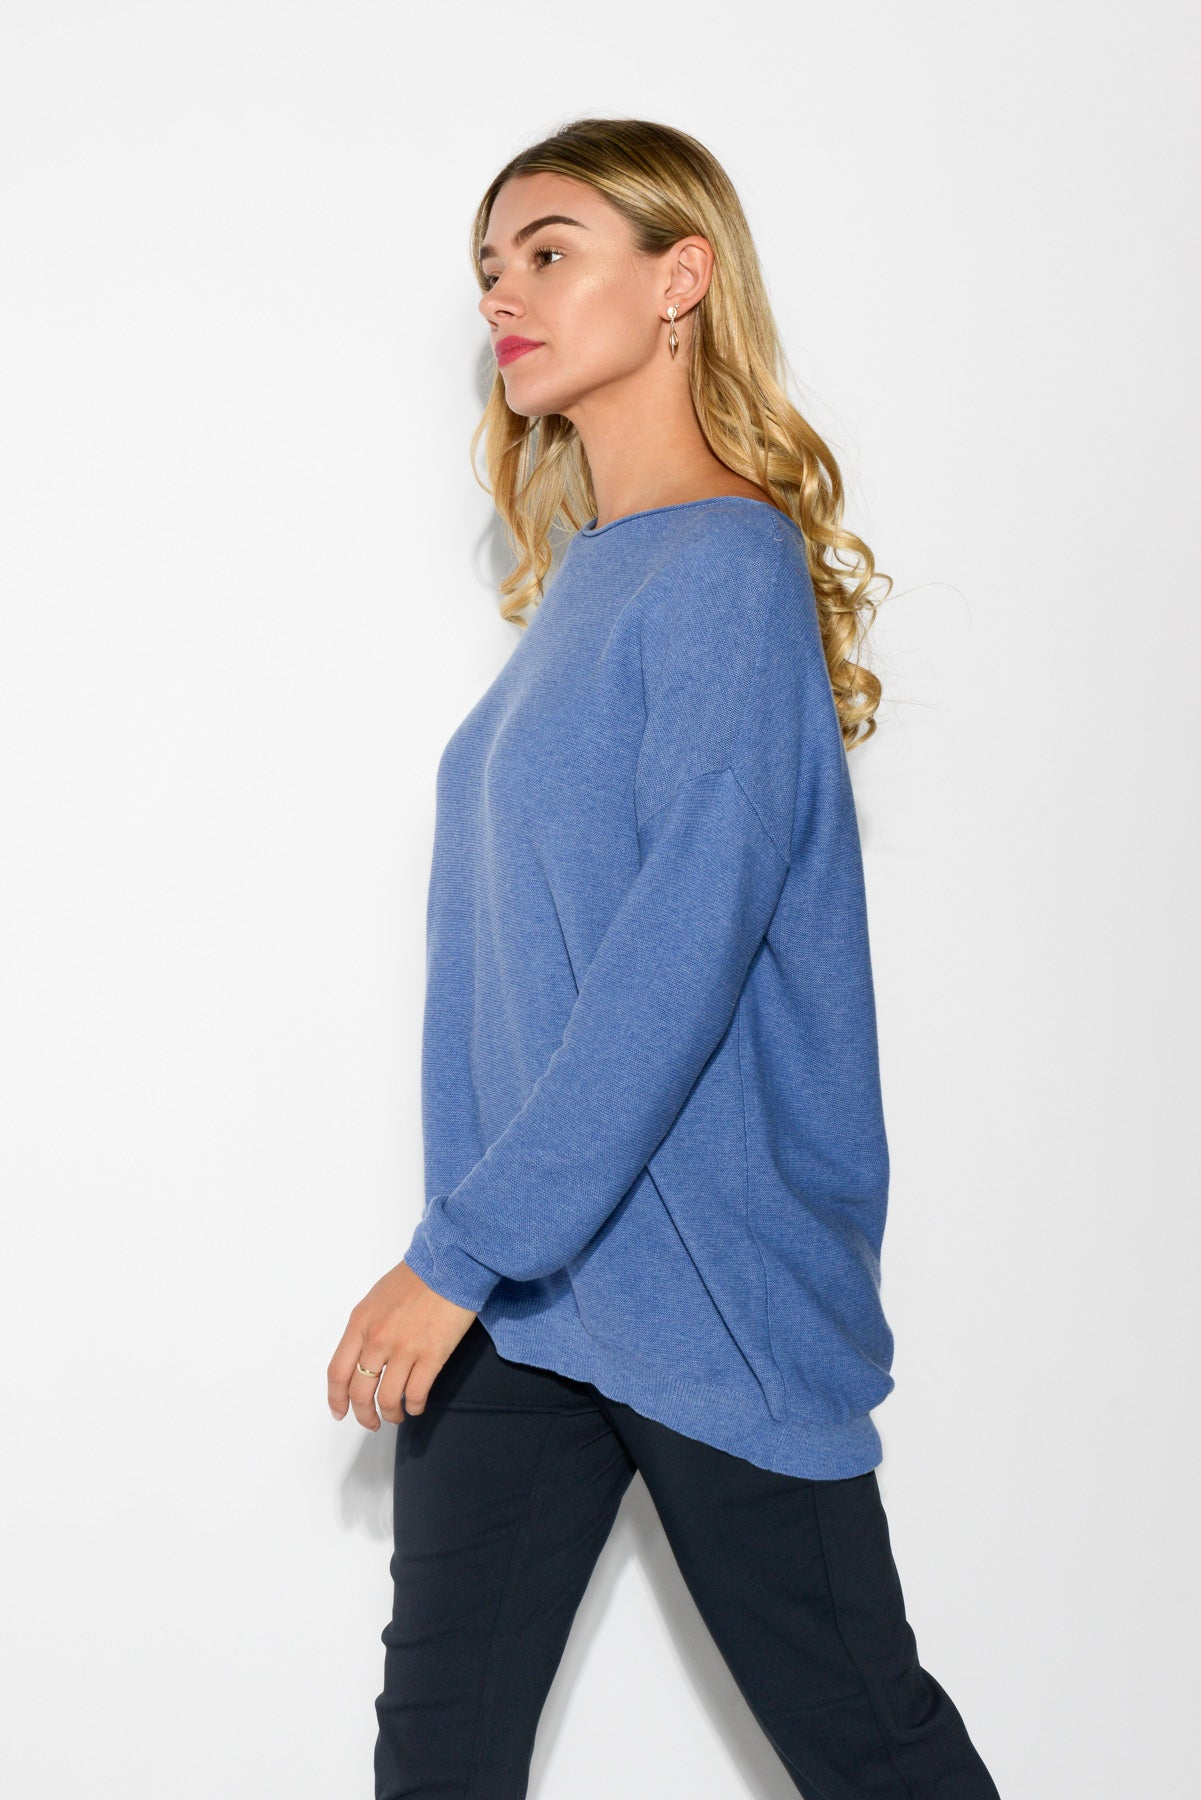 Cora Blue Knit Cotton Jumper - Blue Bungalow